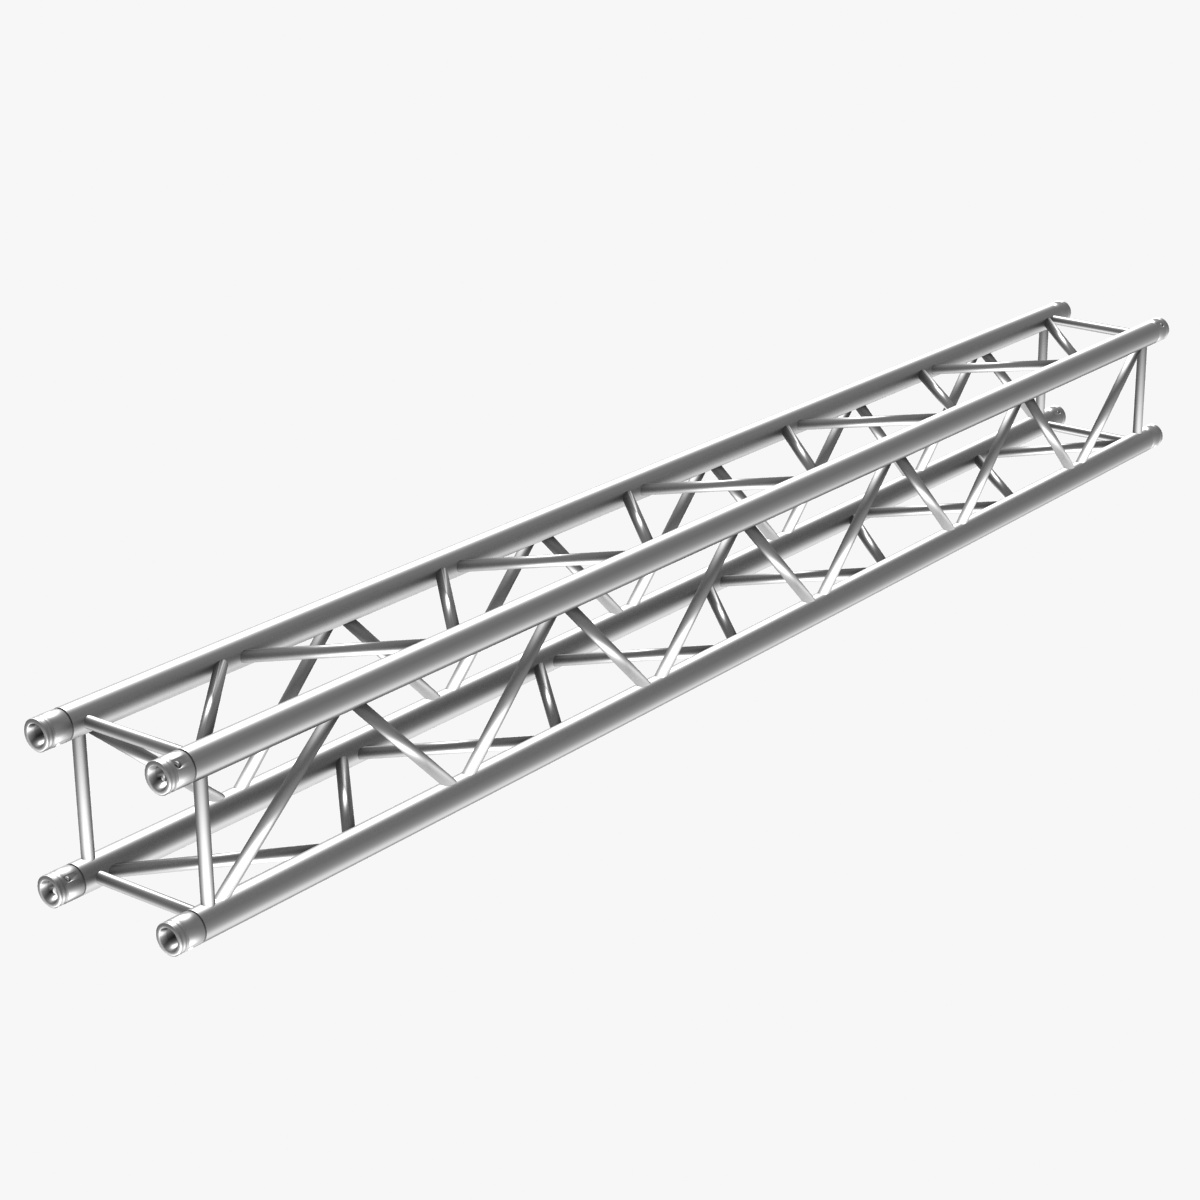 square truss straight segment 26 3d model 3ds max dxf fbx b3d c4d other  obj 268921